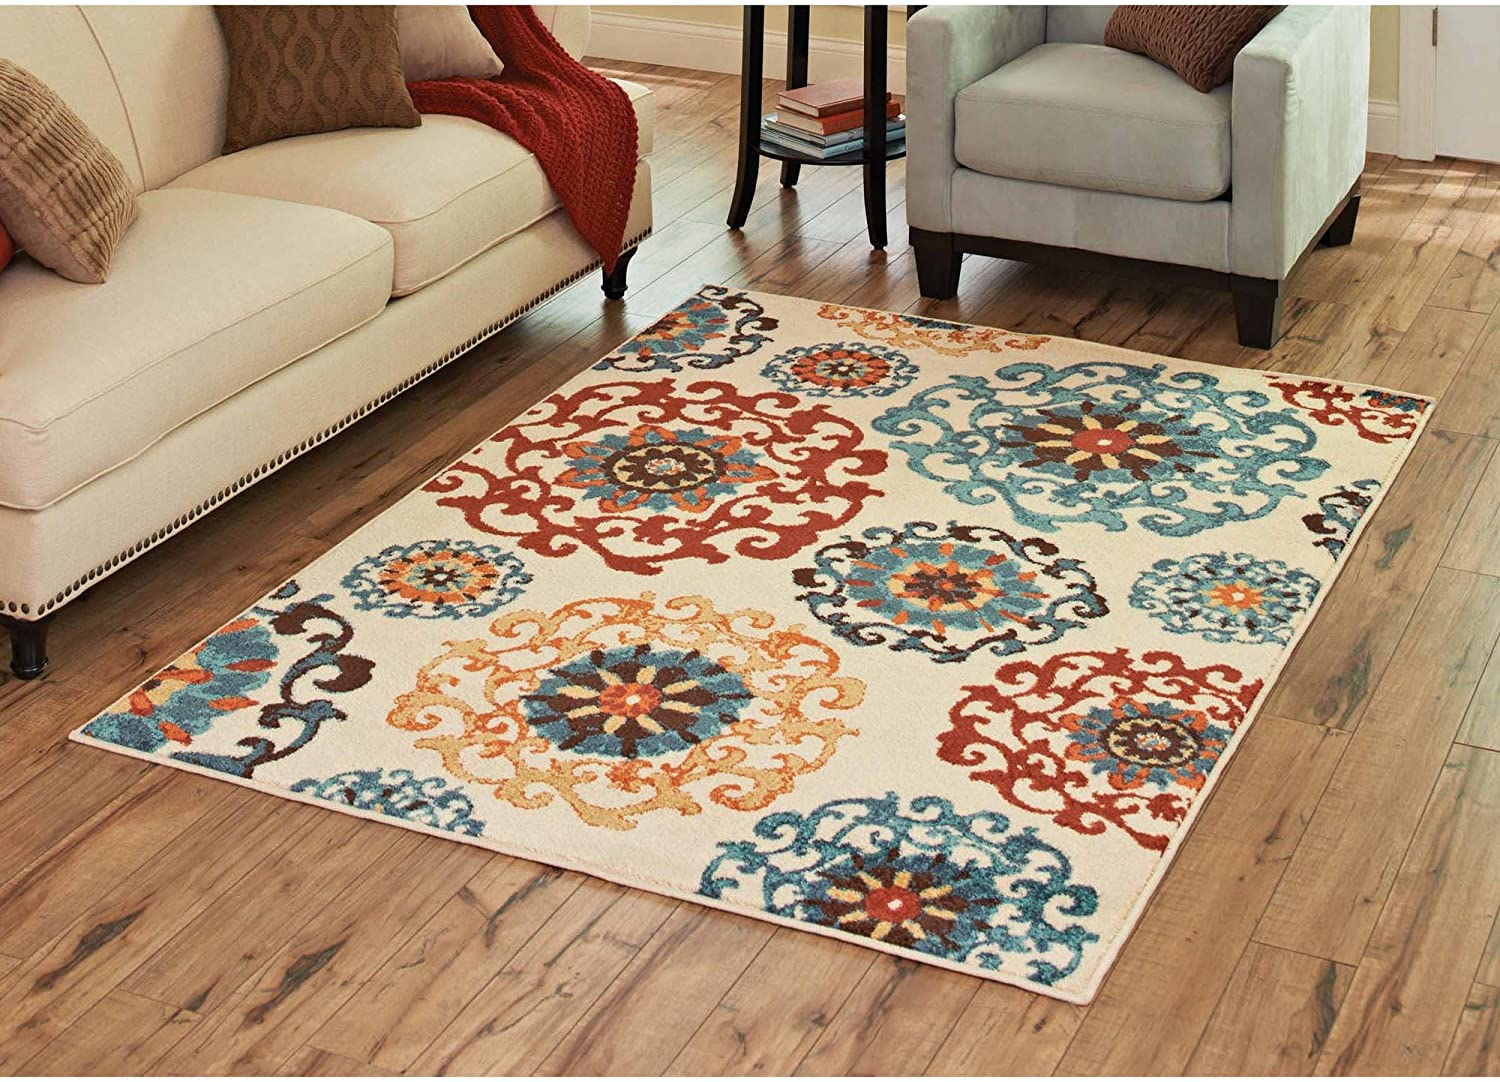 Amazon Com Better Homes And Gardens 283167 Orian Rugs Suzani